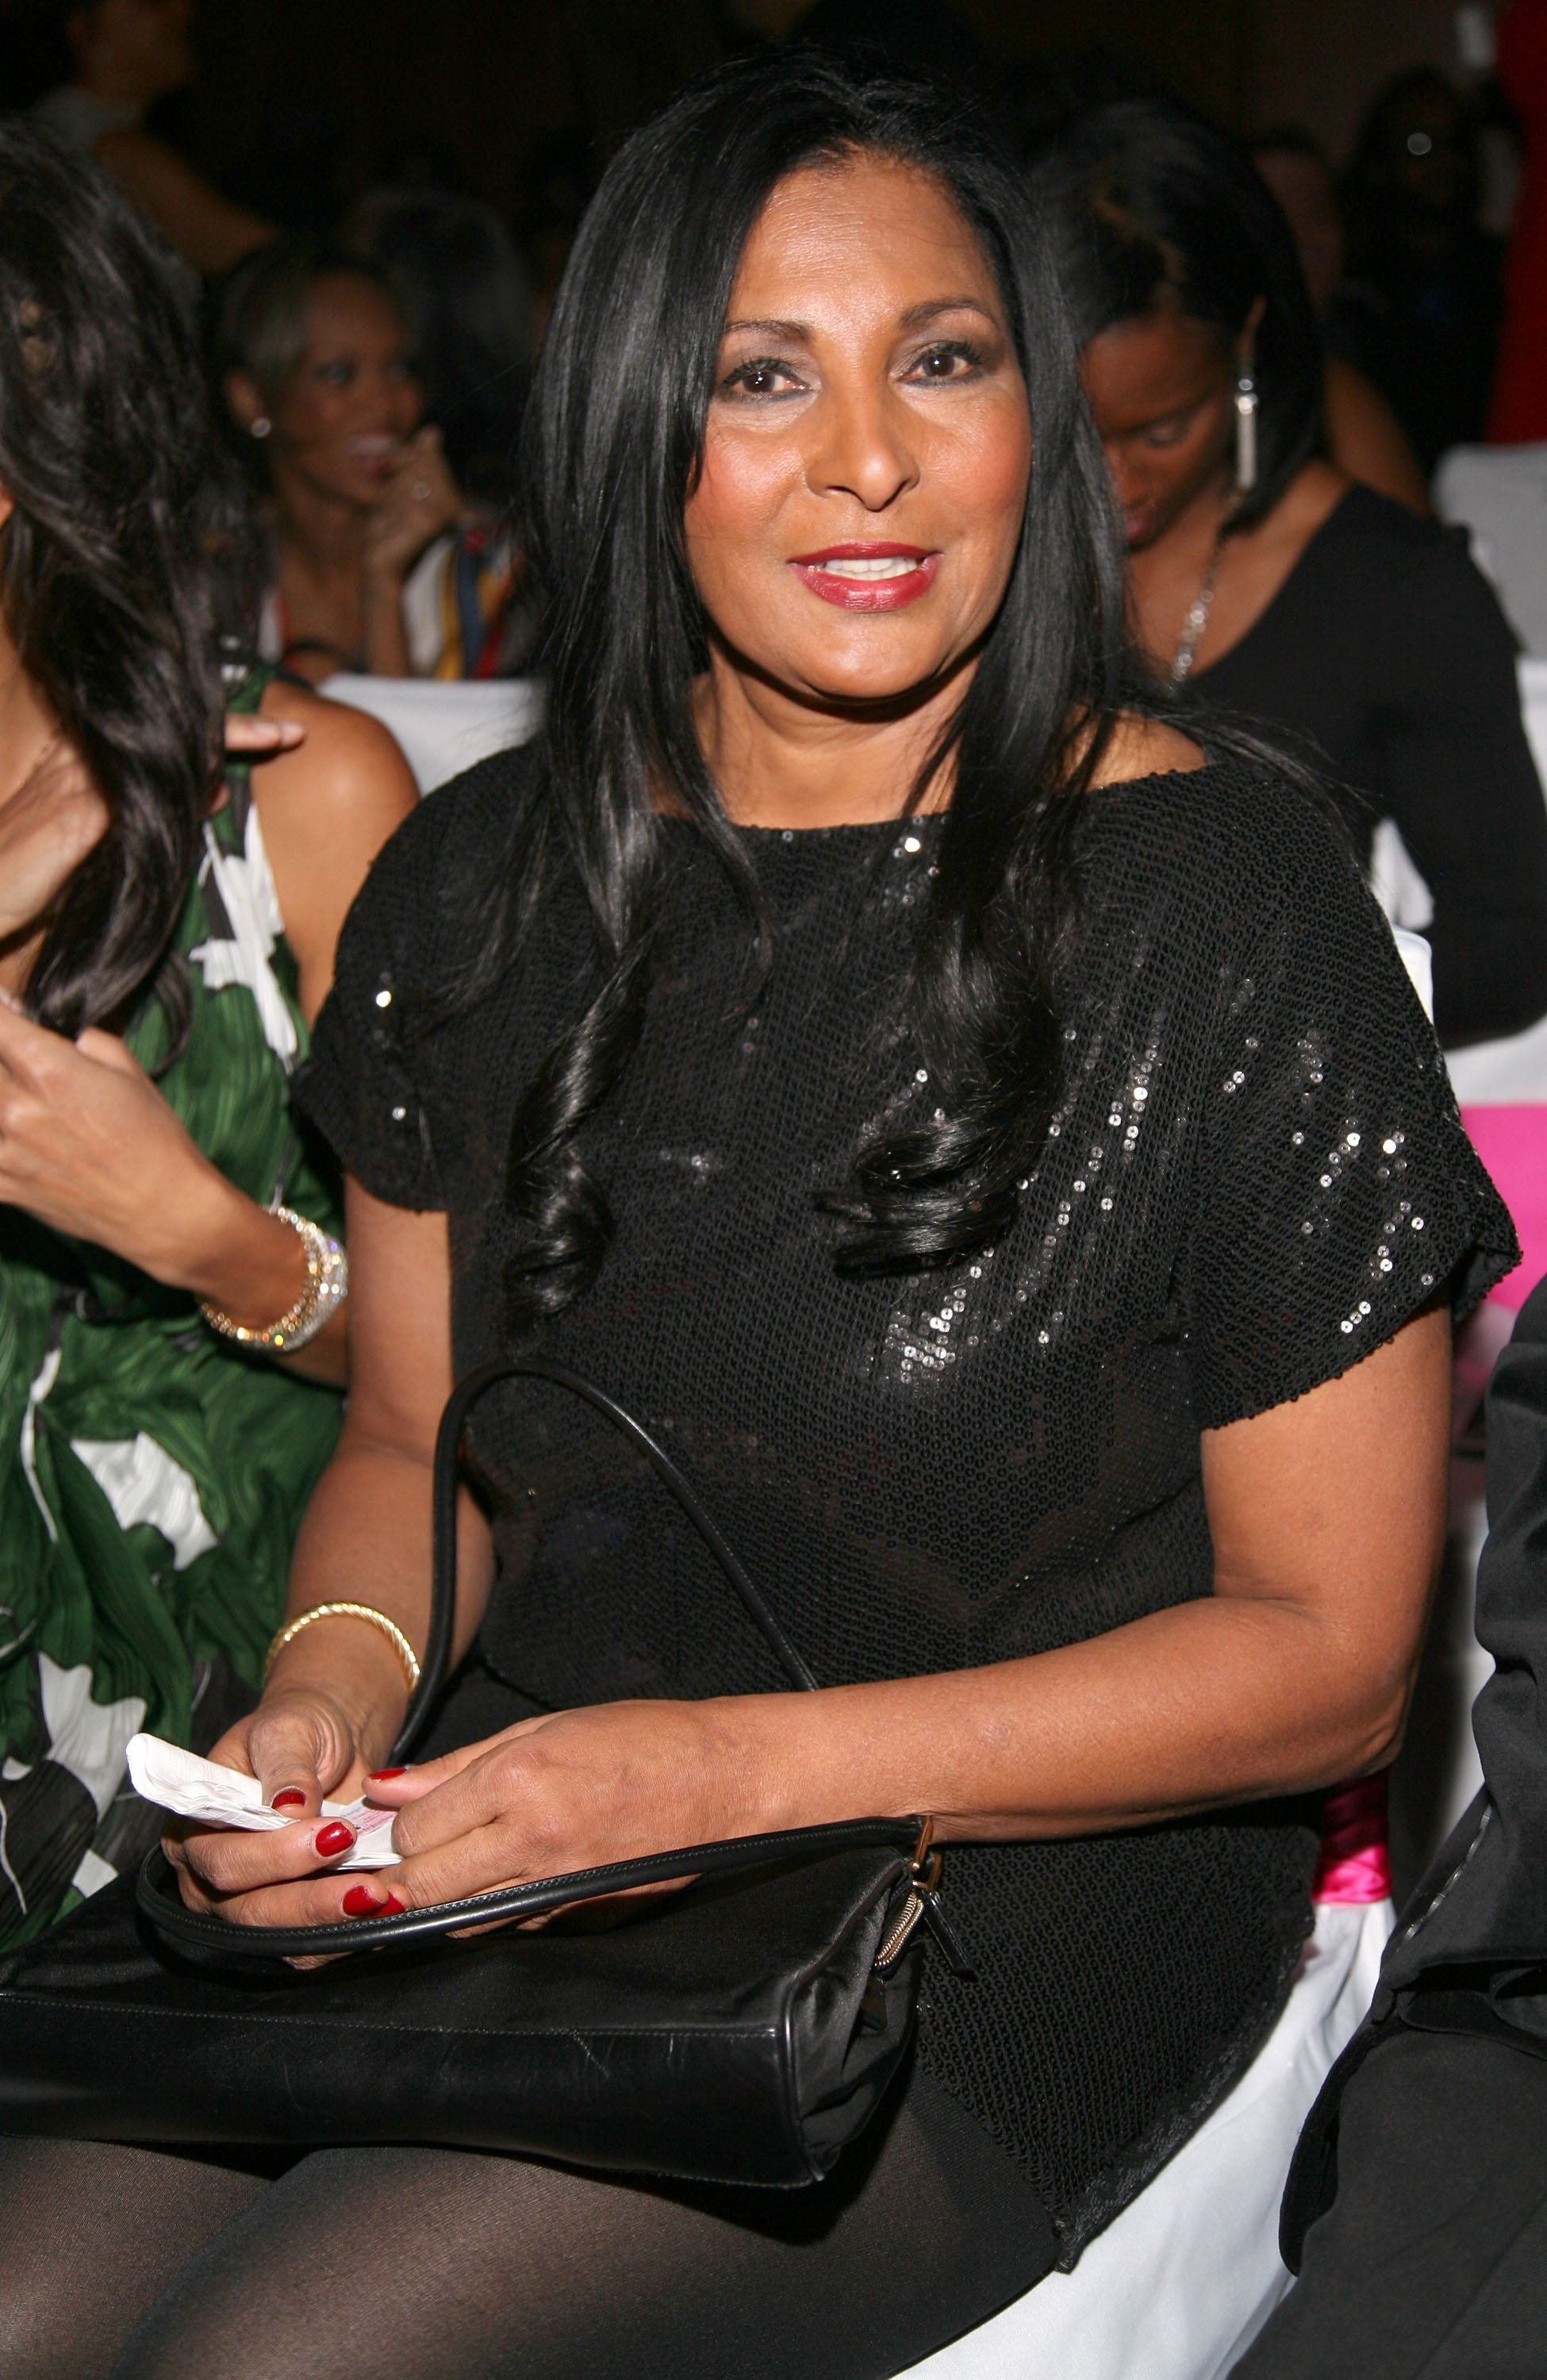 Pam Grier at the 3rd Annual Black Girls Rock! Awards at Jazz at Lincoln Center on November 2, 2008 in New York City. | Source: Getty